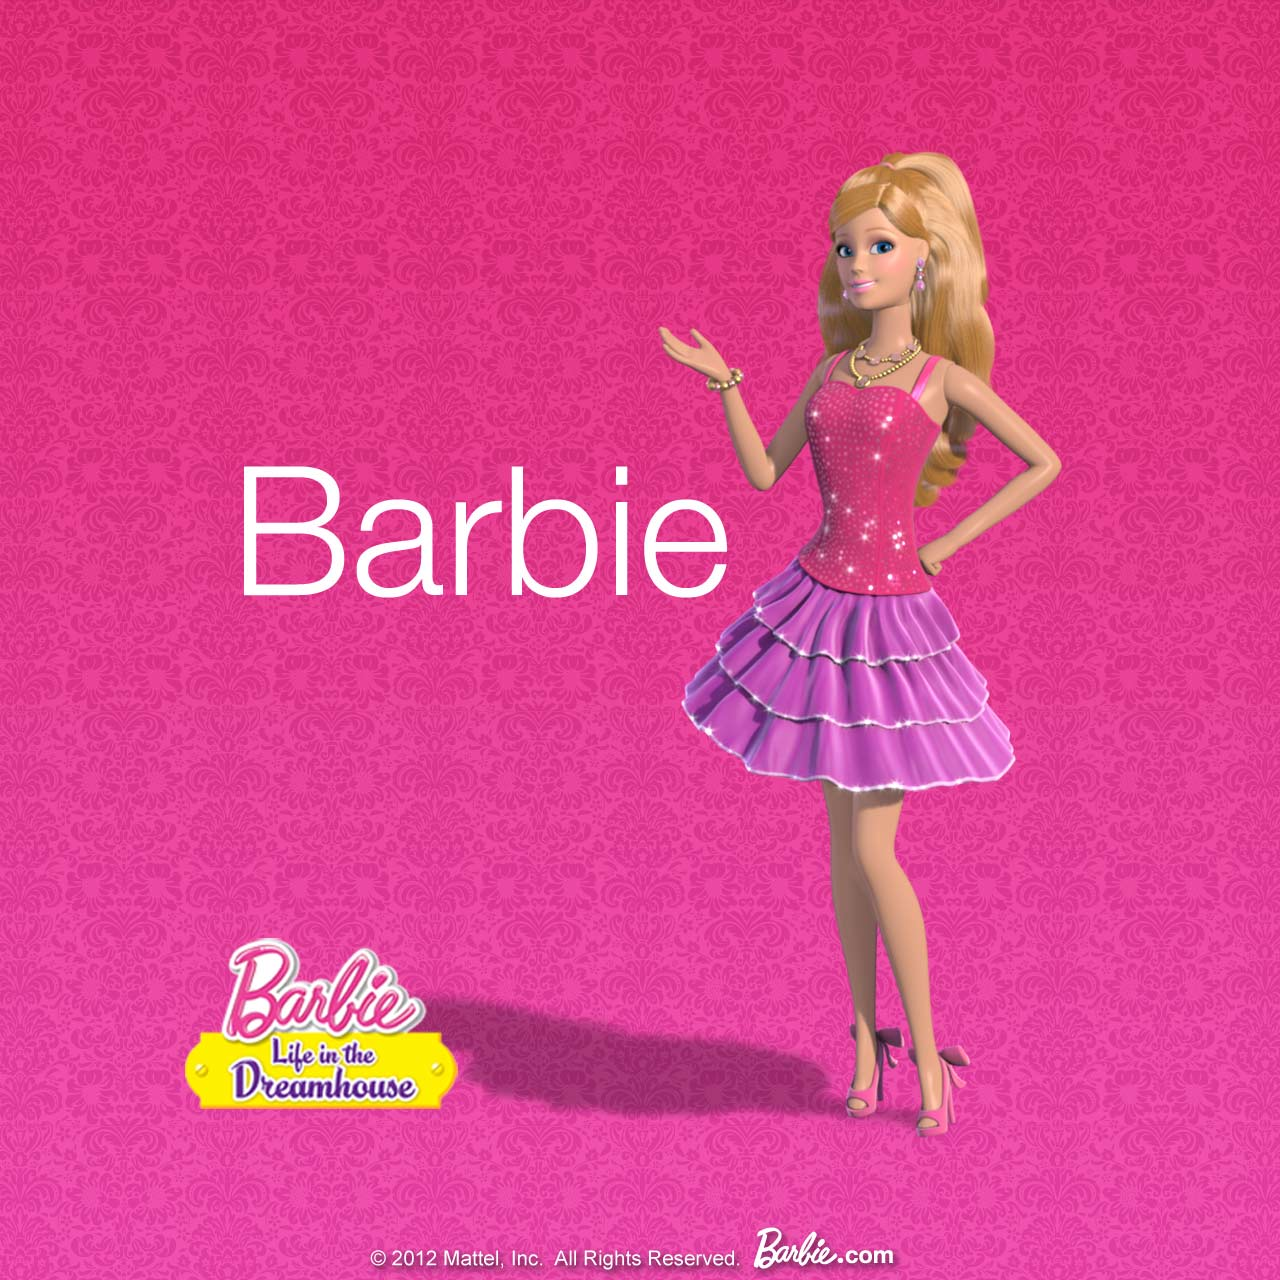 Barbie lost her ken and in desperate need of 6